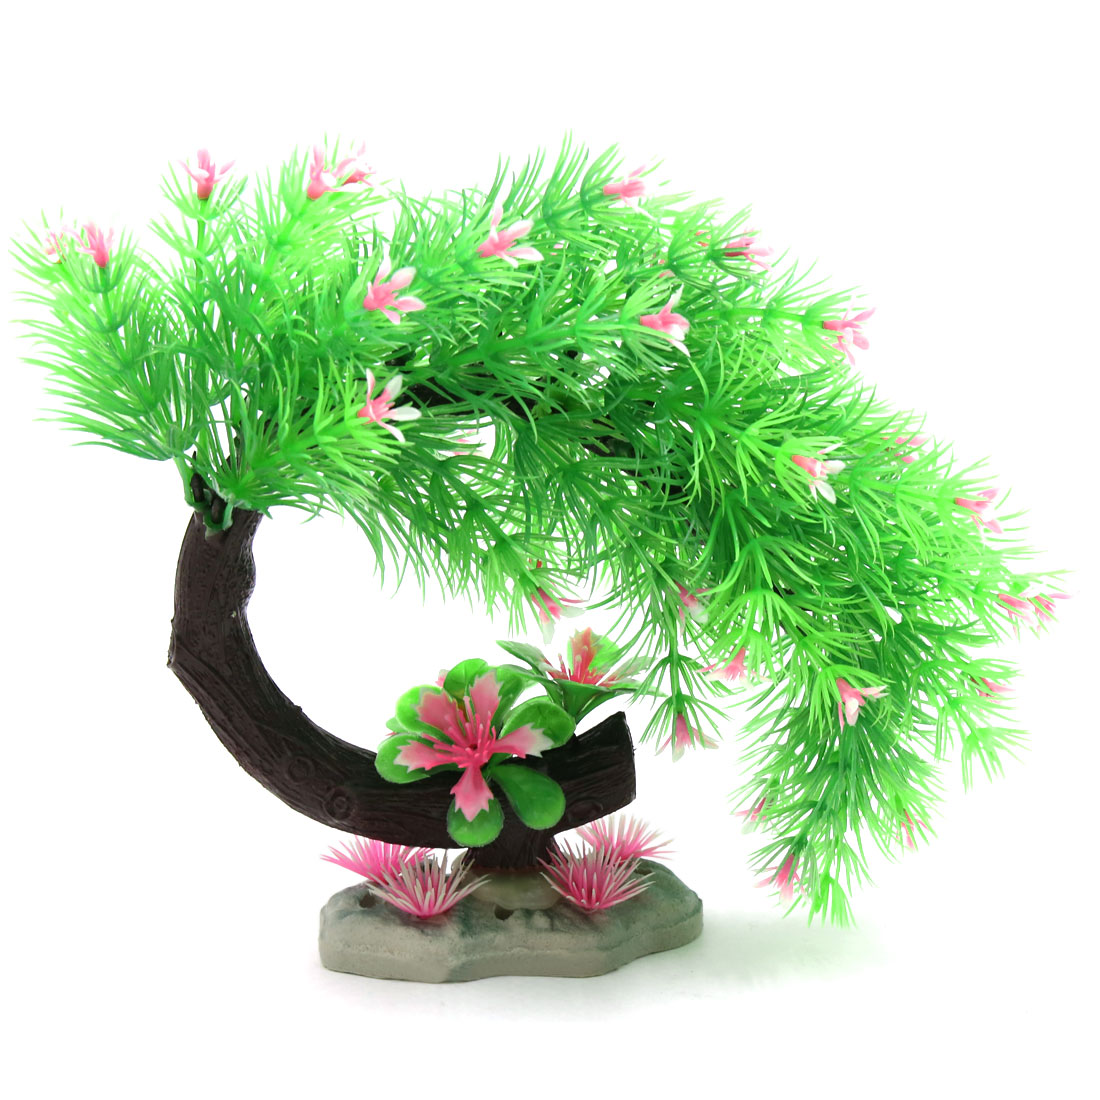 Green Pink Needle Leaves Tree Aquarium Fish Betta Tank Landscape Ornament